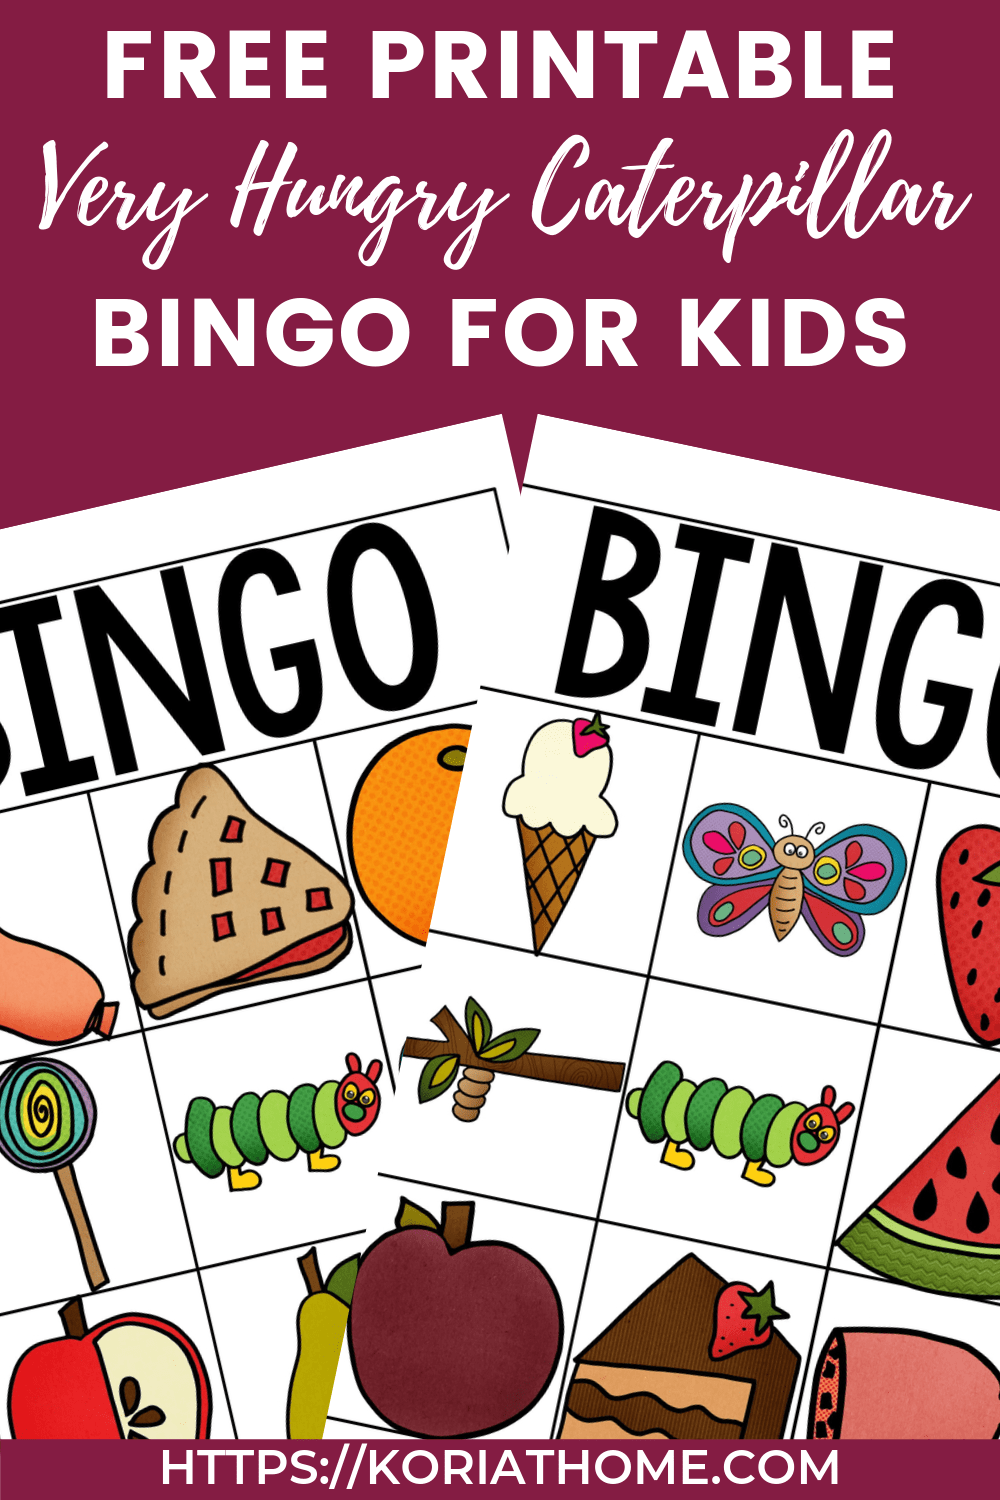 Free Printable Very Hungry Caterpillar Inspired Bingo Cards